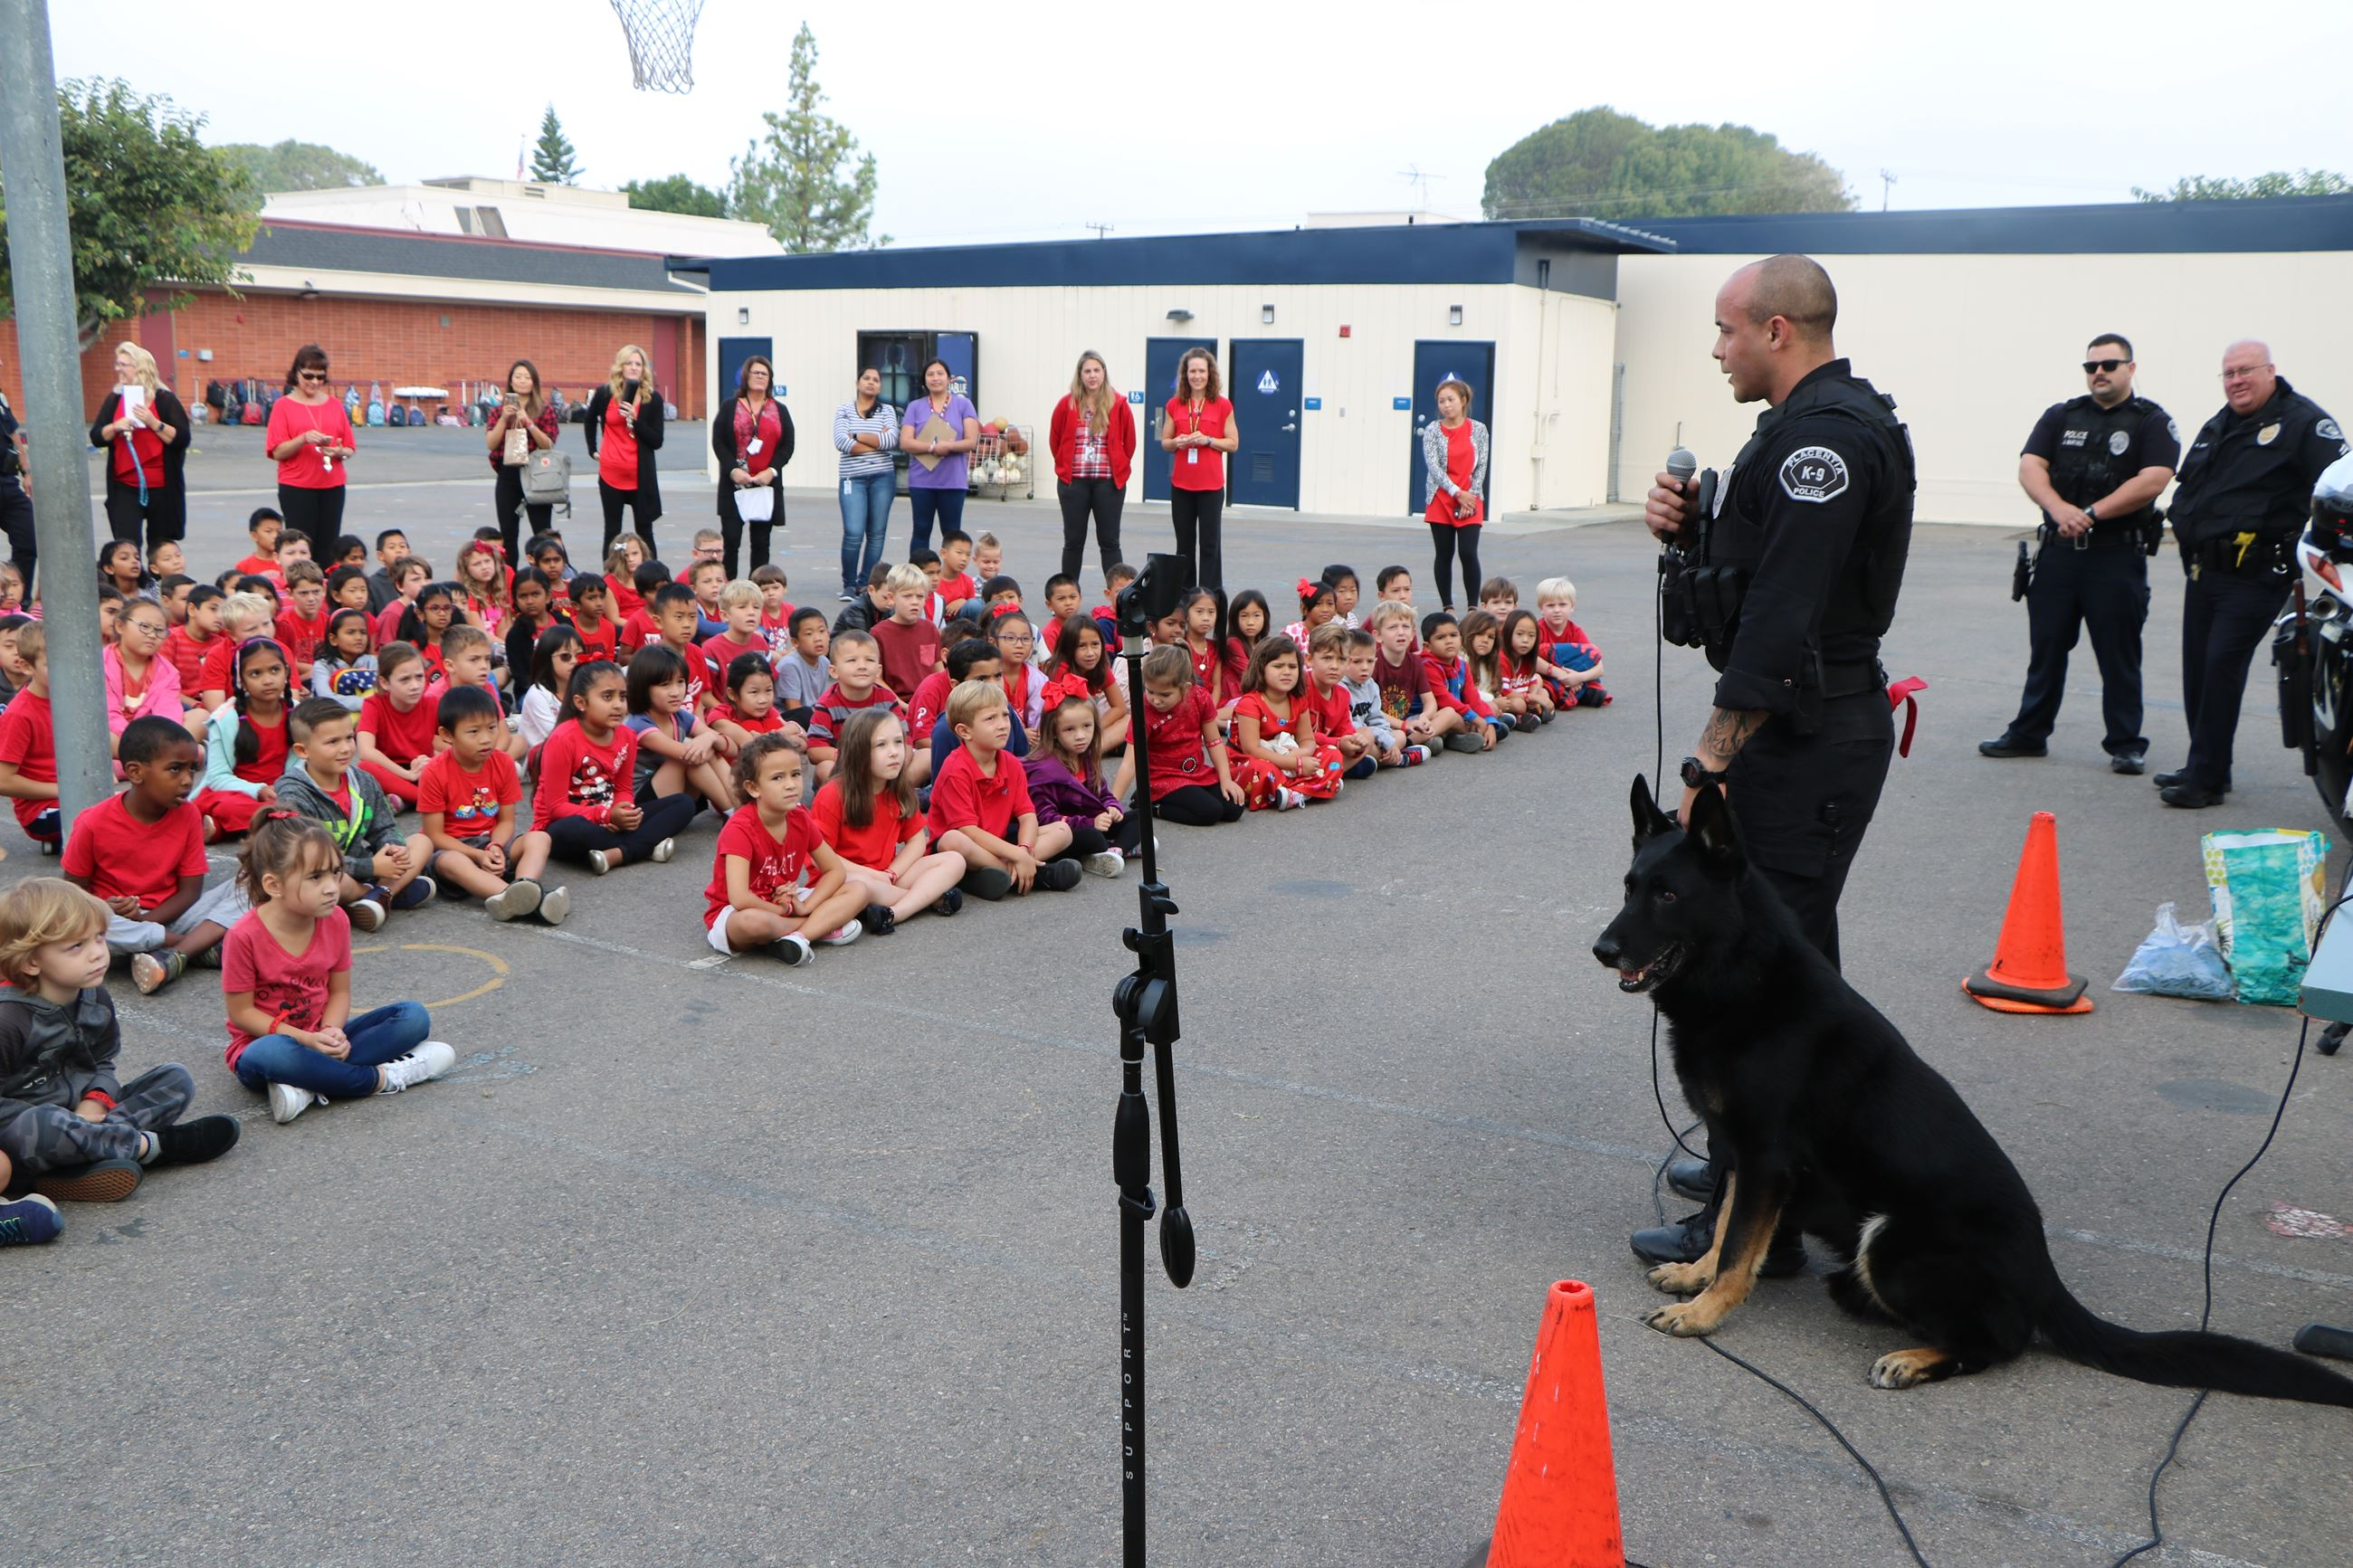 K-9 officer talking to children at Red Ribbon week event